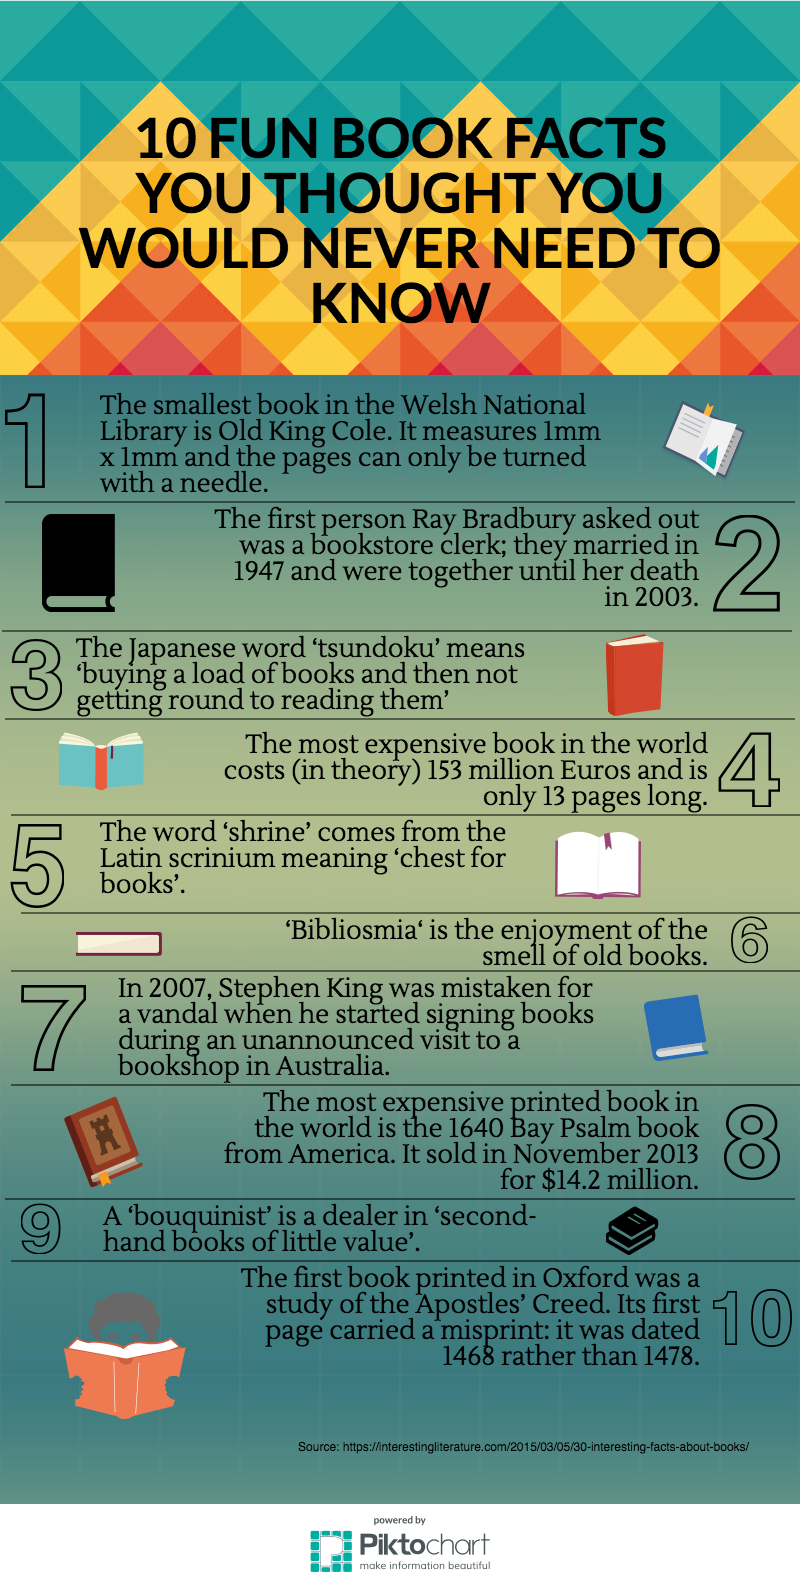 10 Fun Book Facts Infographic